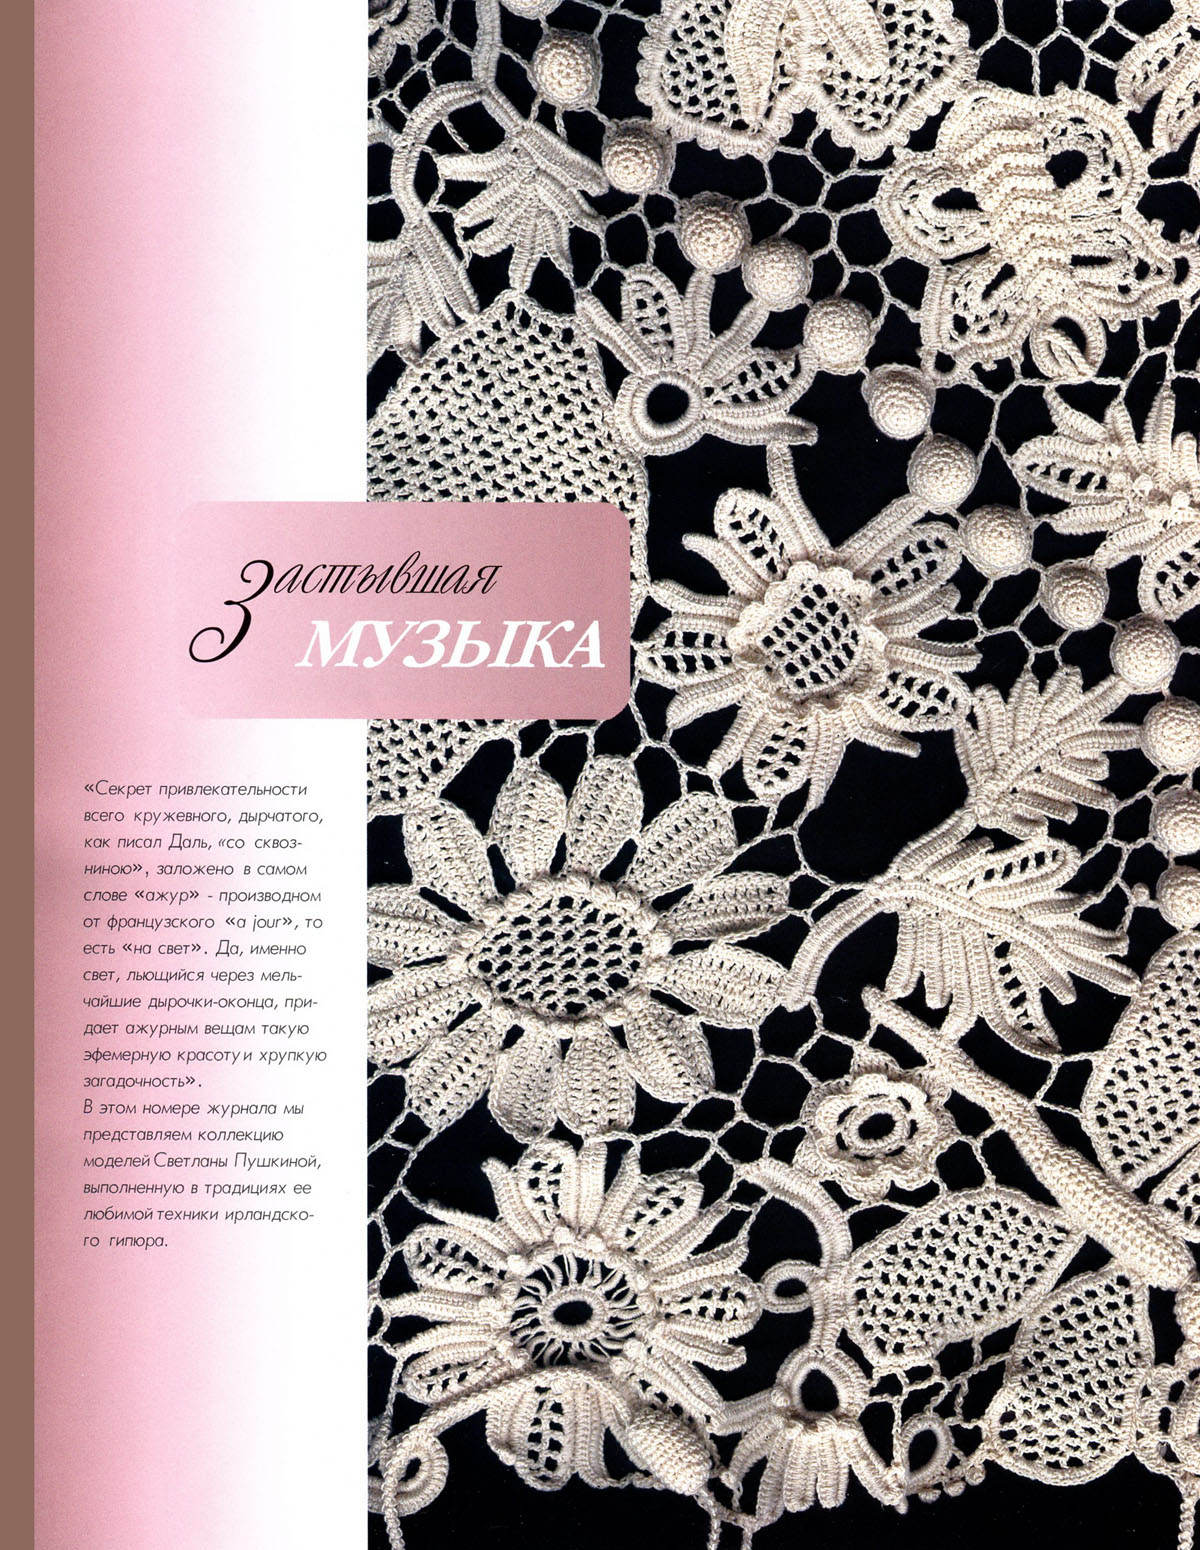 Irish Crochet charity group sought to revive the economy by teaching crochet lace  technique fahezpp